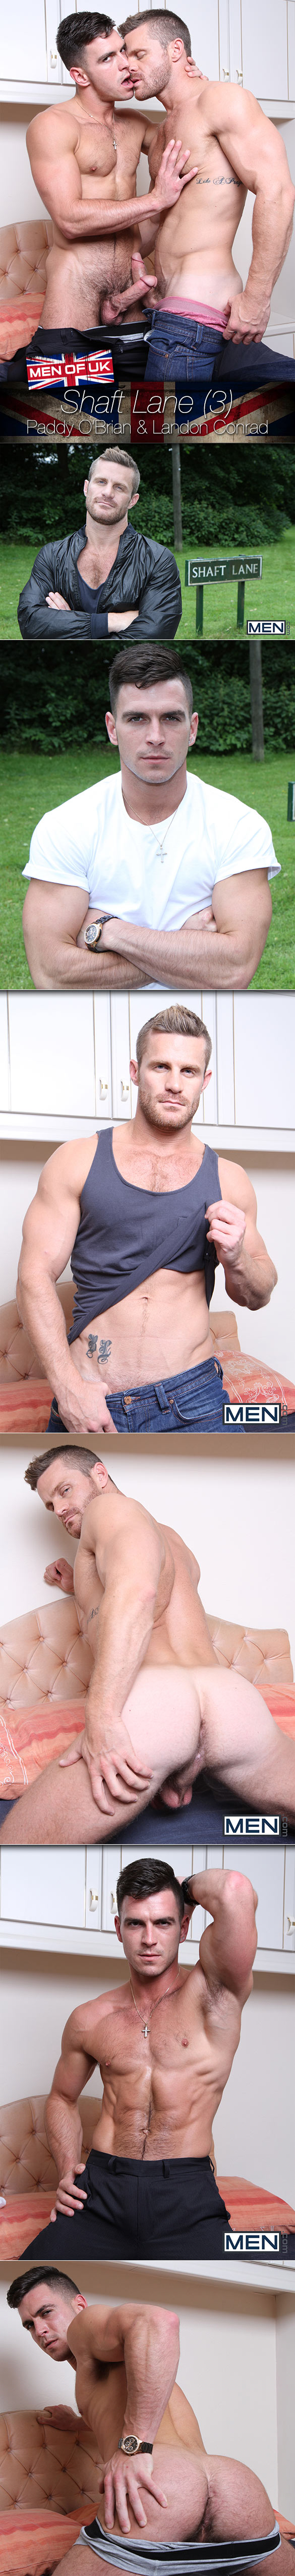 "Men.com: Paddy O'Brian fucks Landon Conrad in ""Shaft Lane, Part 3"""